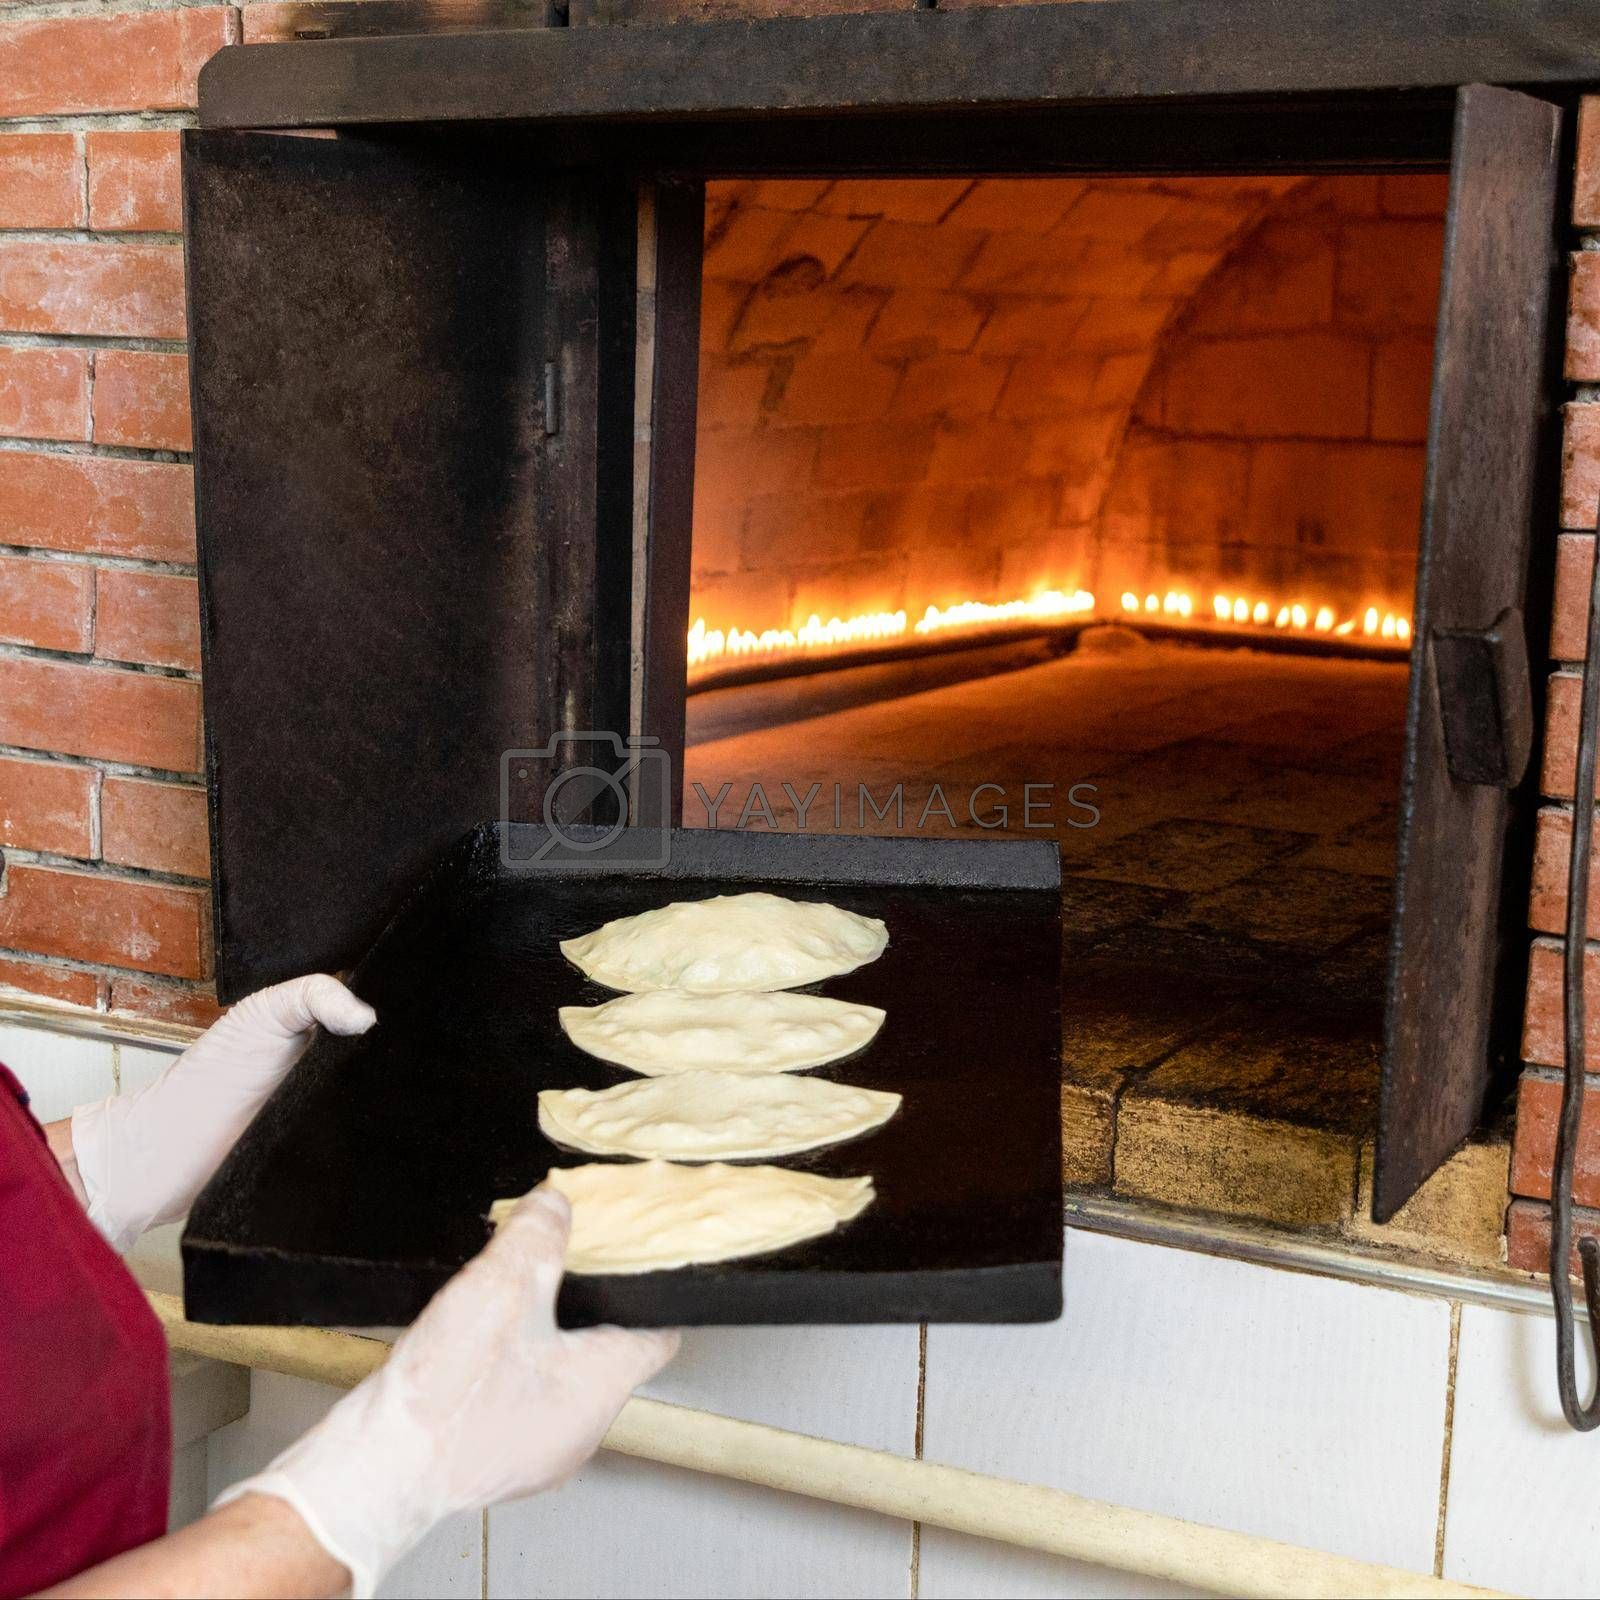 Woman putting qutab meal to the oven